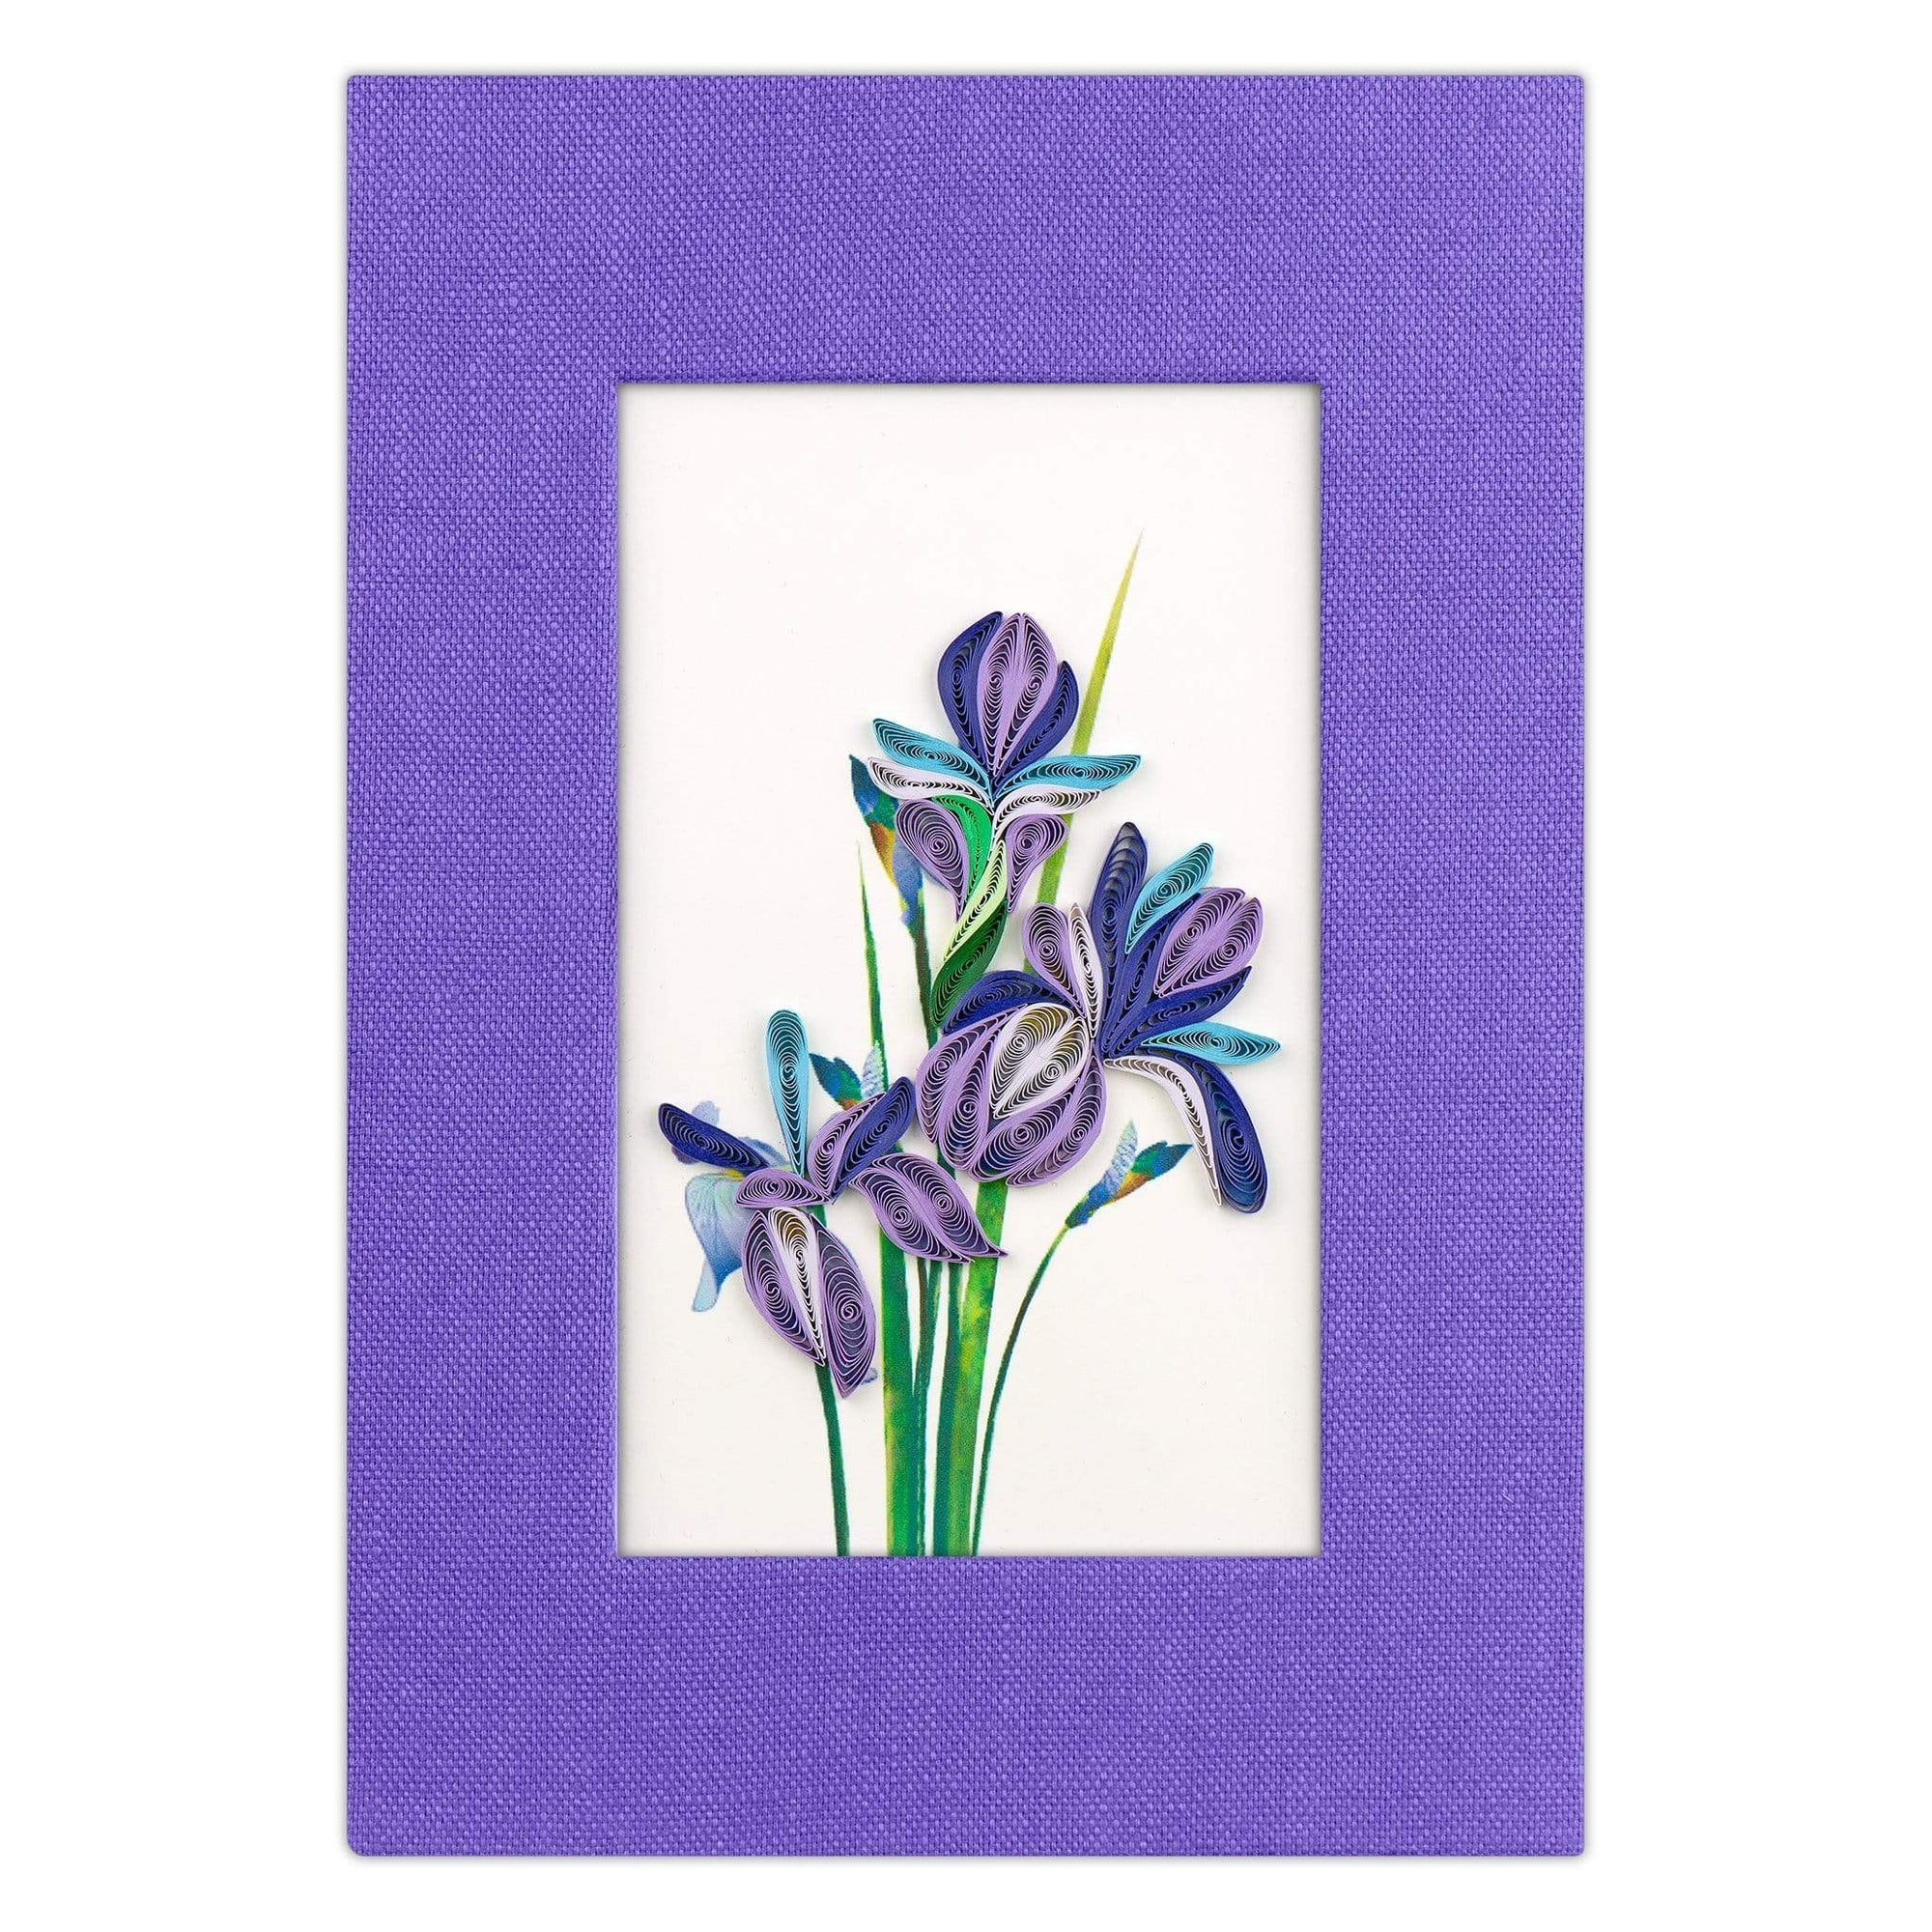 Iris Journal - Lavender